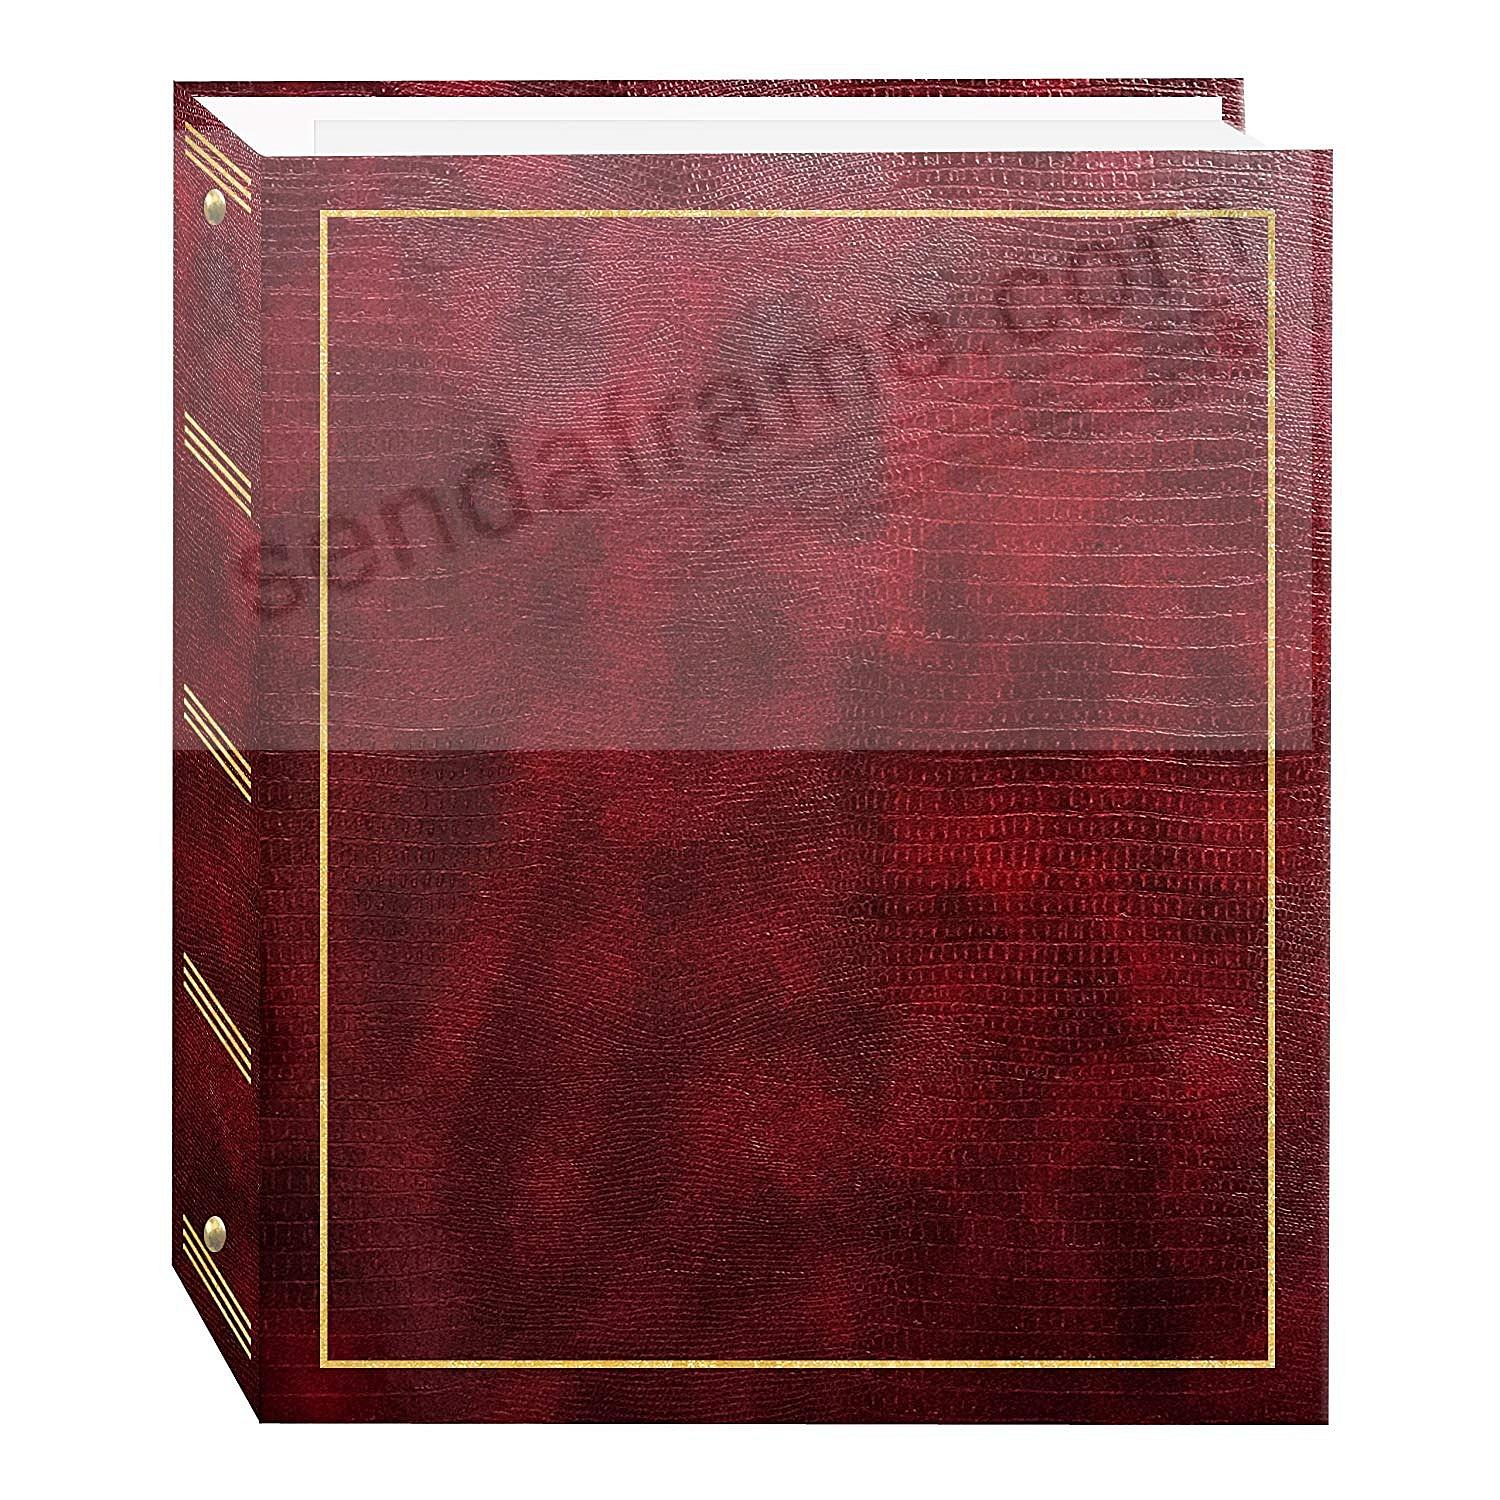 BURGUNDY 3-ring album<br>w/EZ-stick magnetic pages